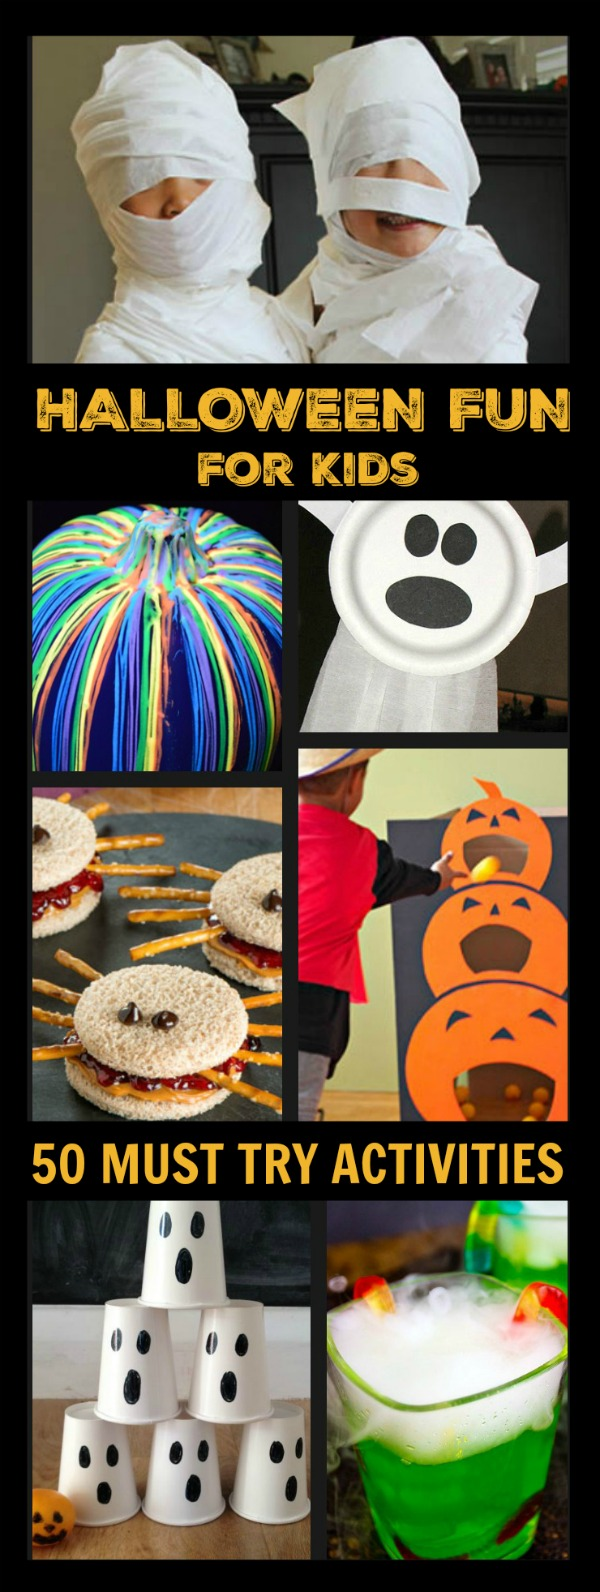 50 SUPER FUN HALLOWEEN ACTIVITIES FOR KIDS, games, crafts, recipes, and more